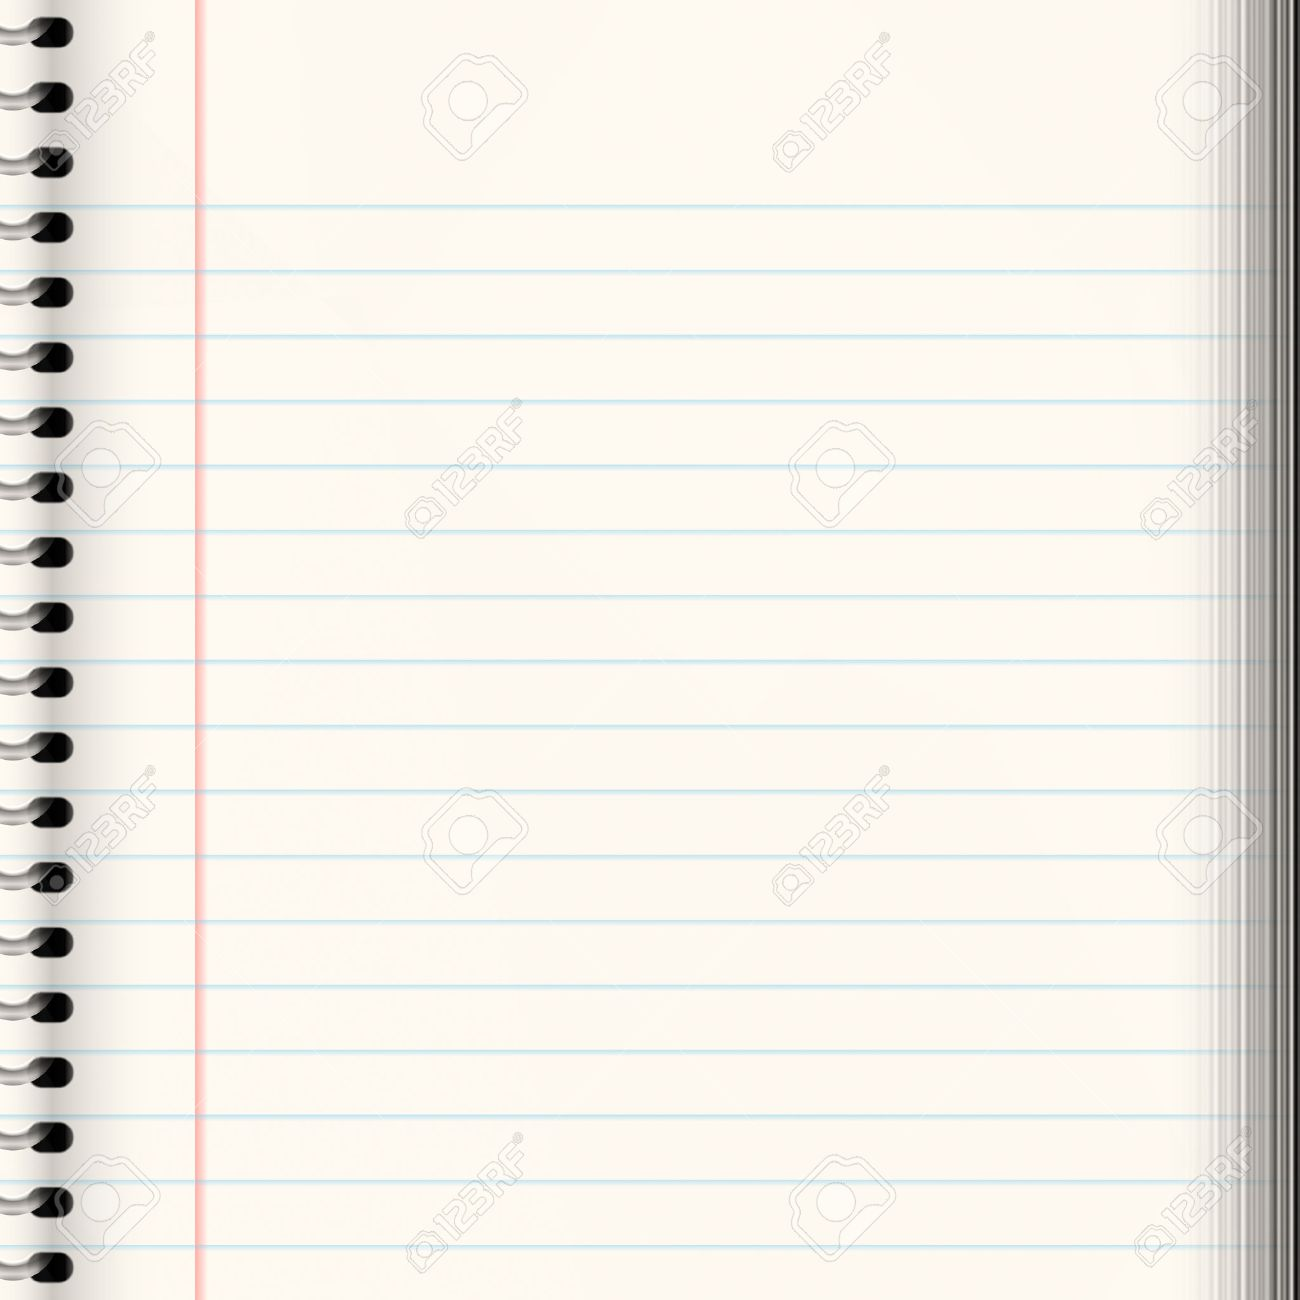 Nice Image Of A Book Of Ruled Or Lined Paper Photo Picture – Lined Paper with Picture